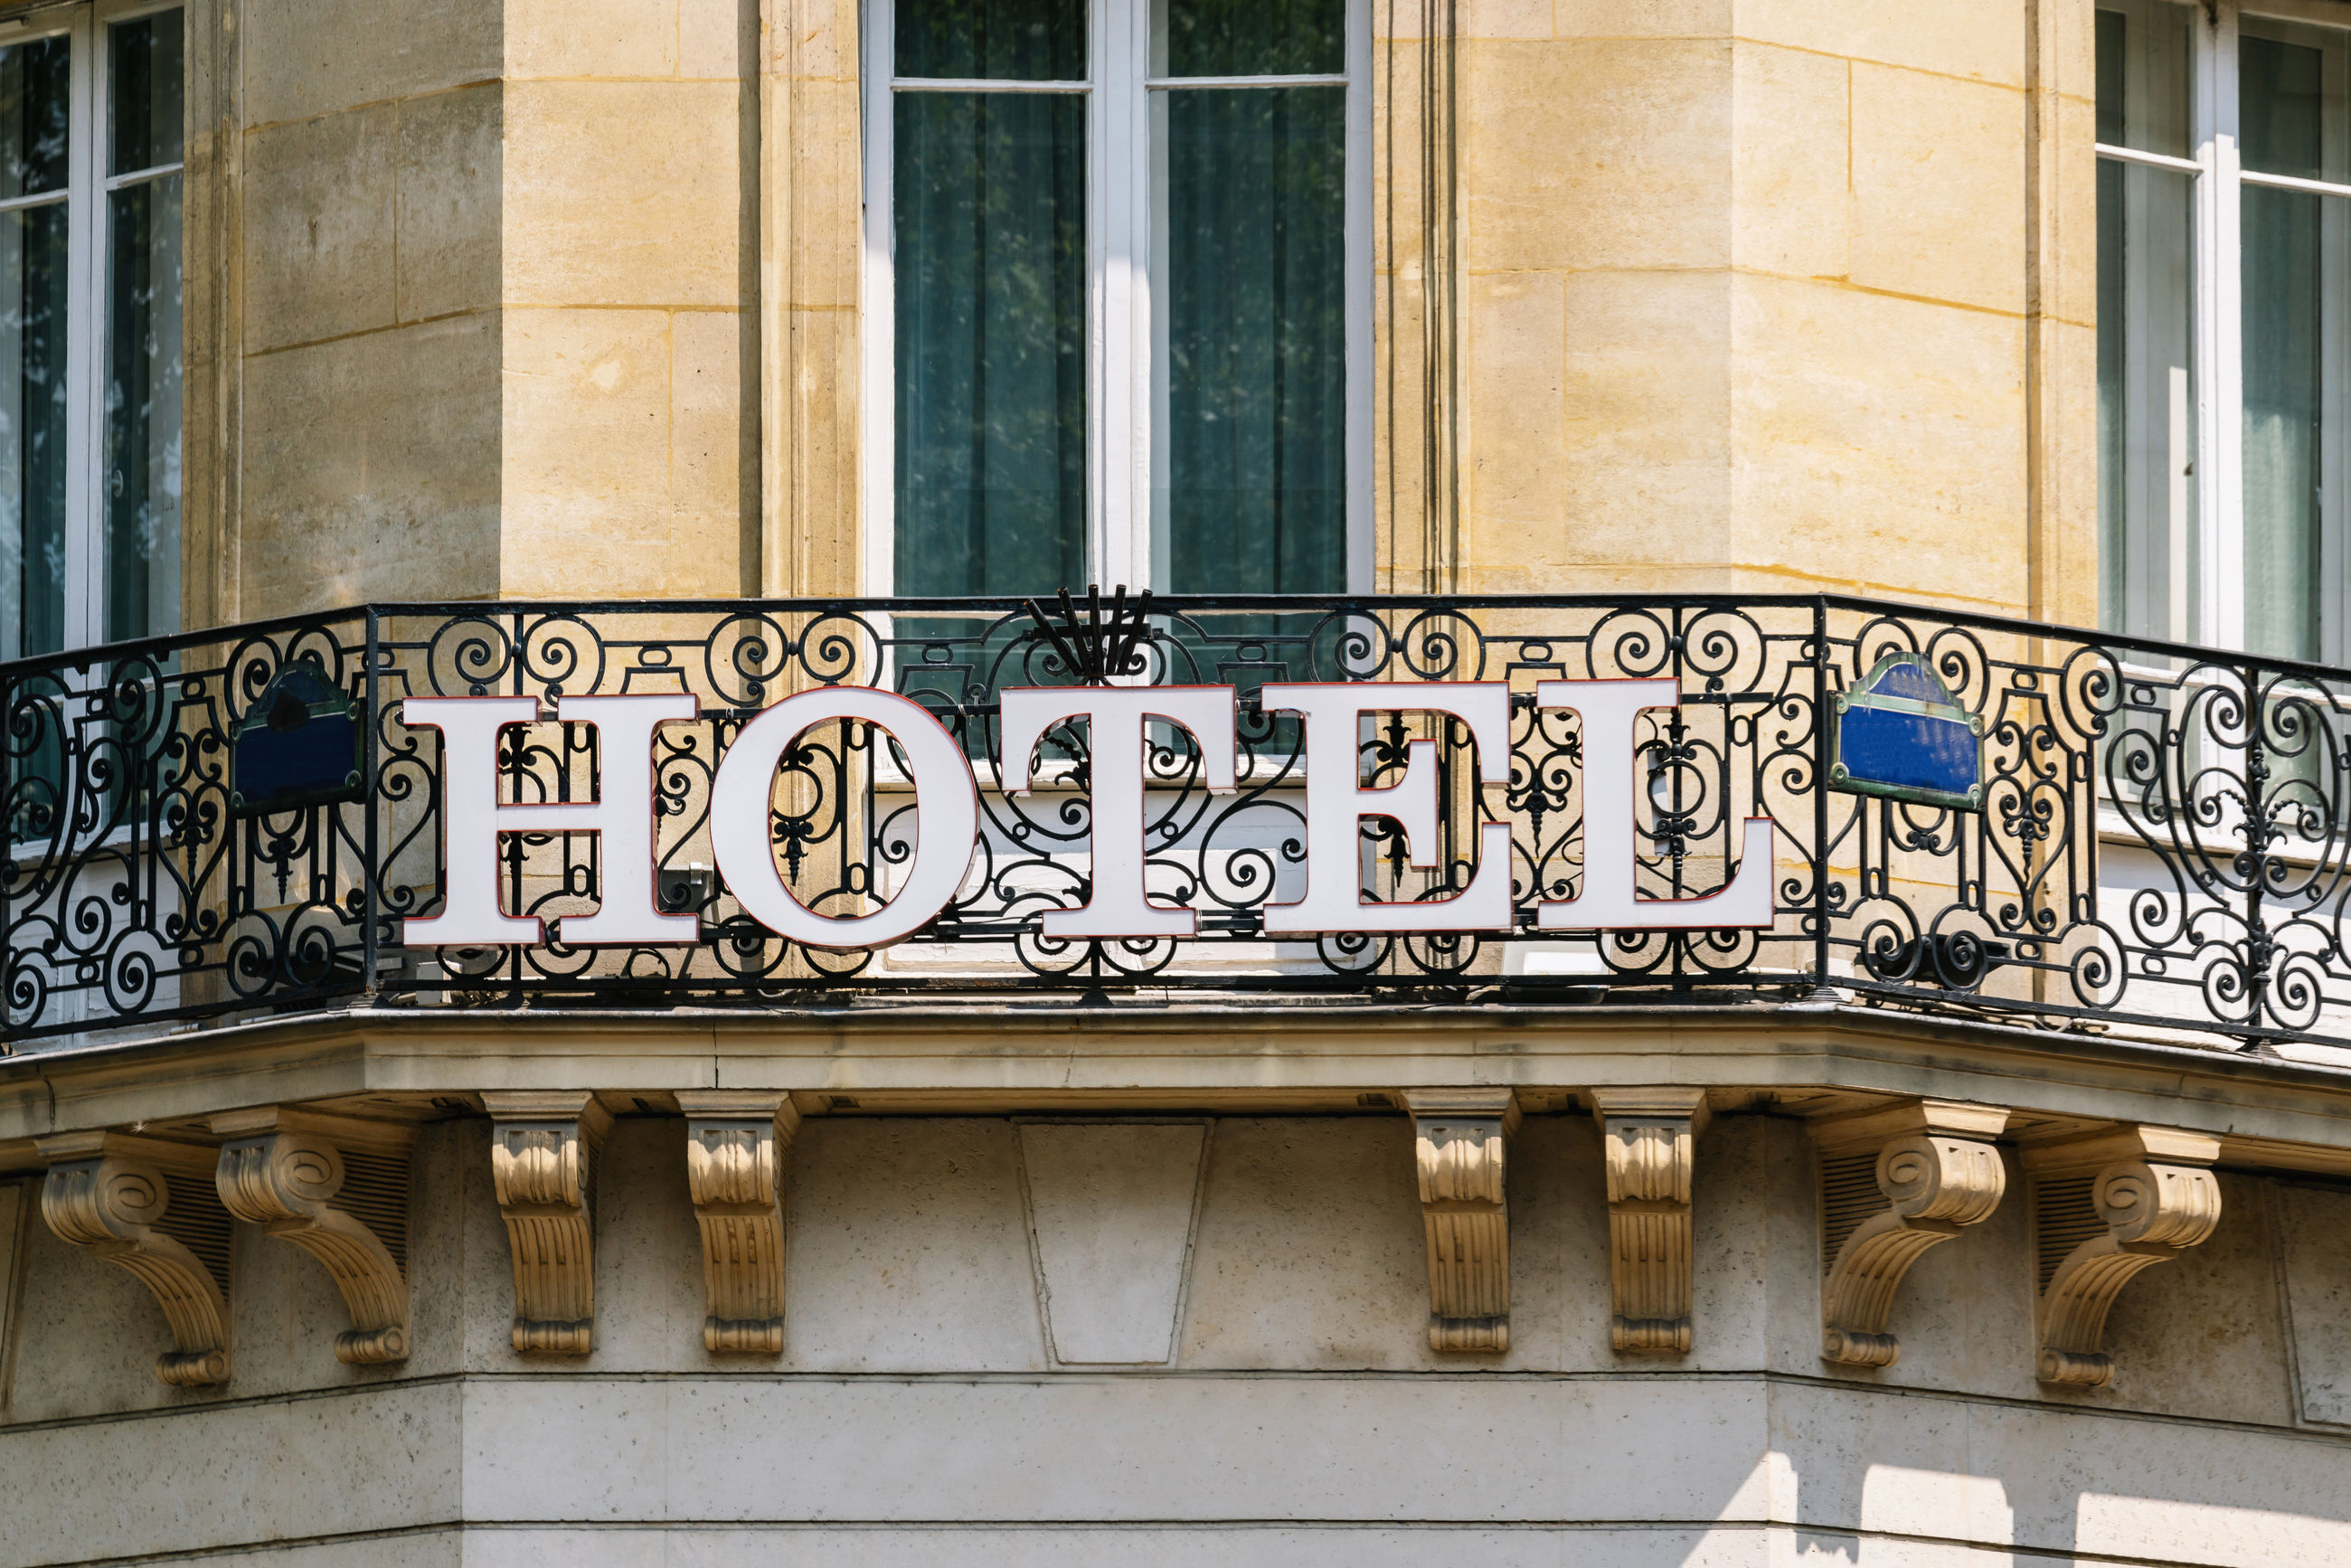 Low angle view of building with hotel sign